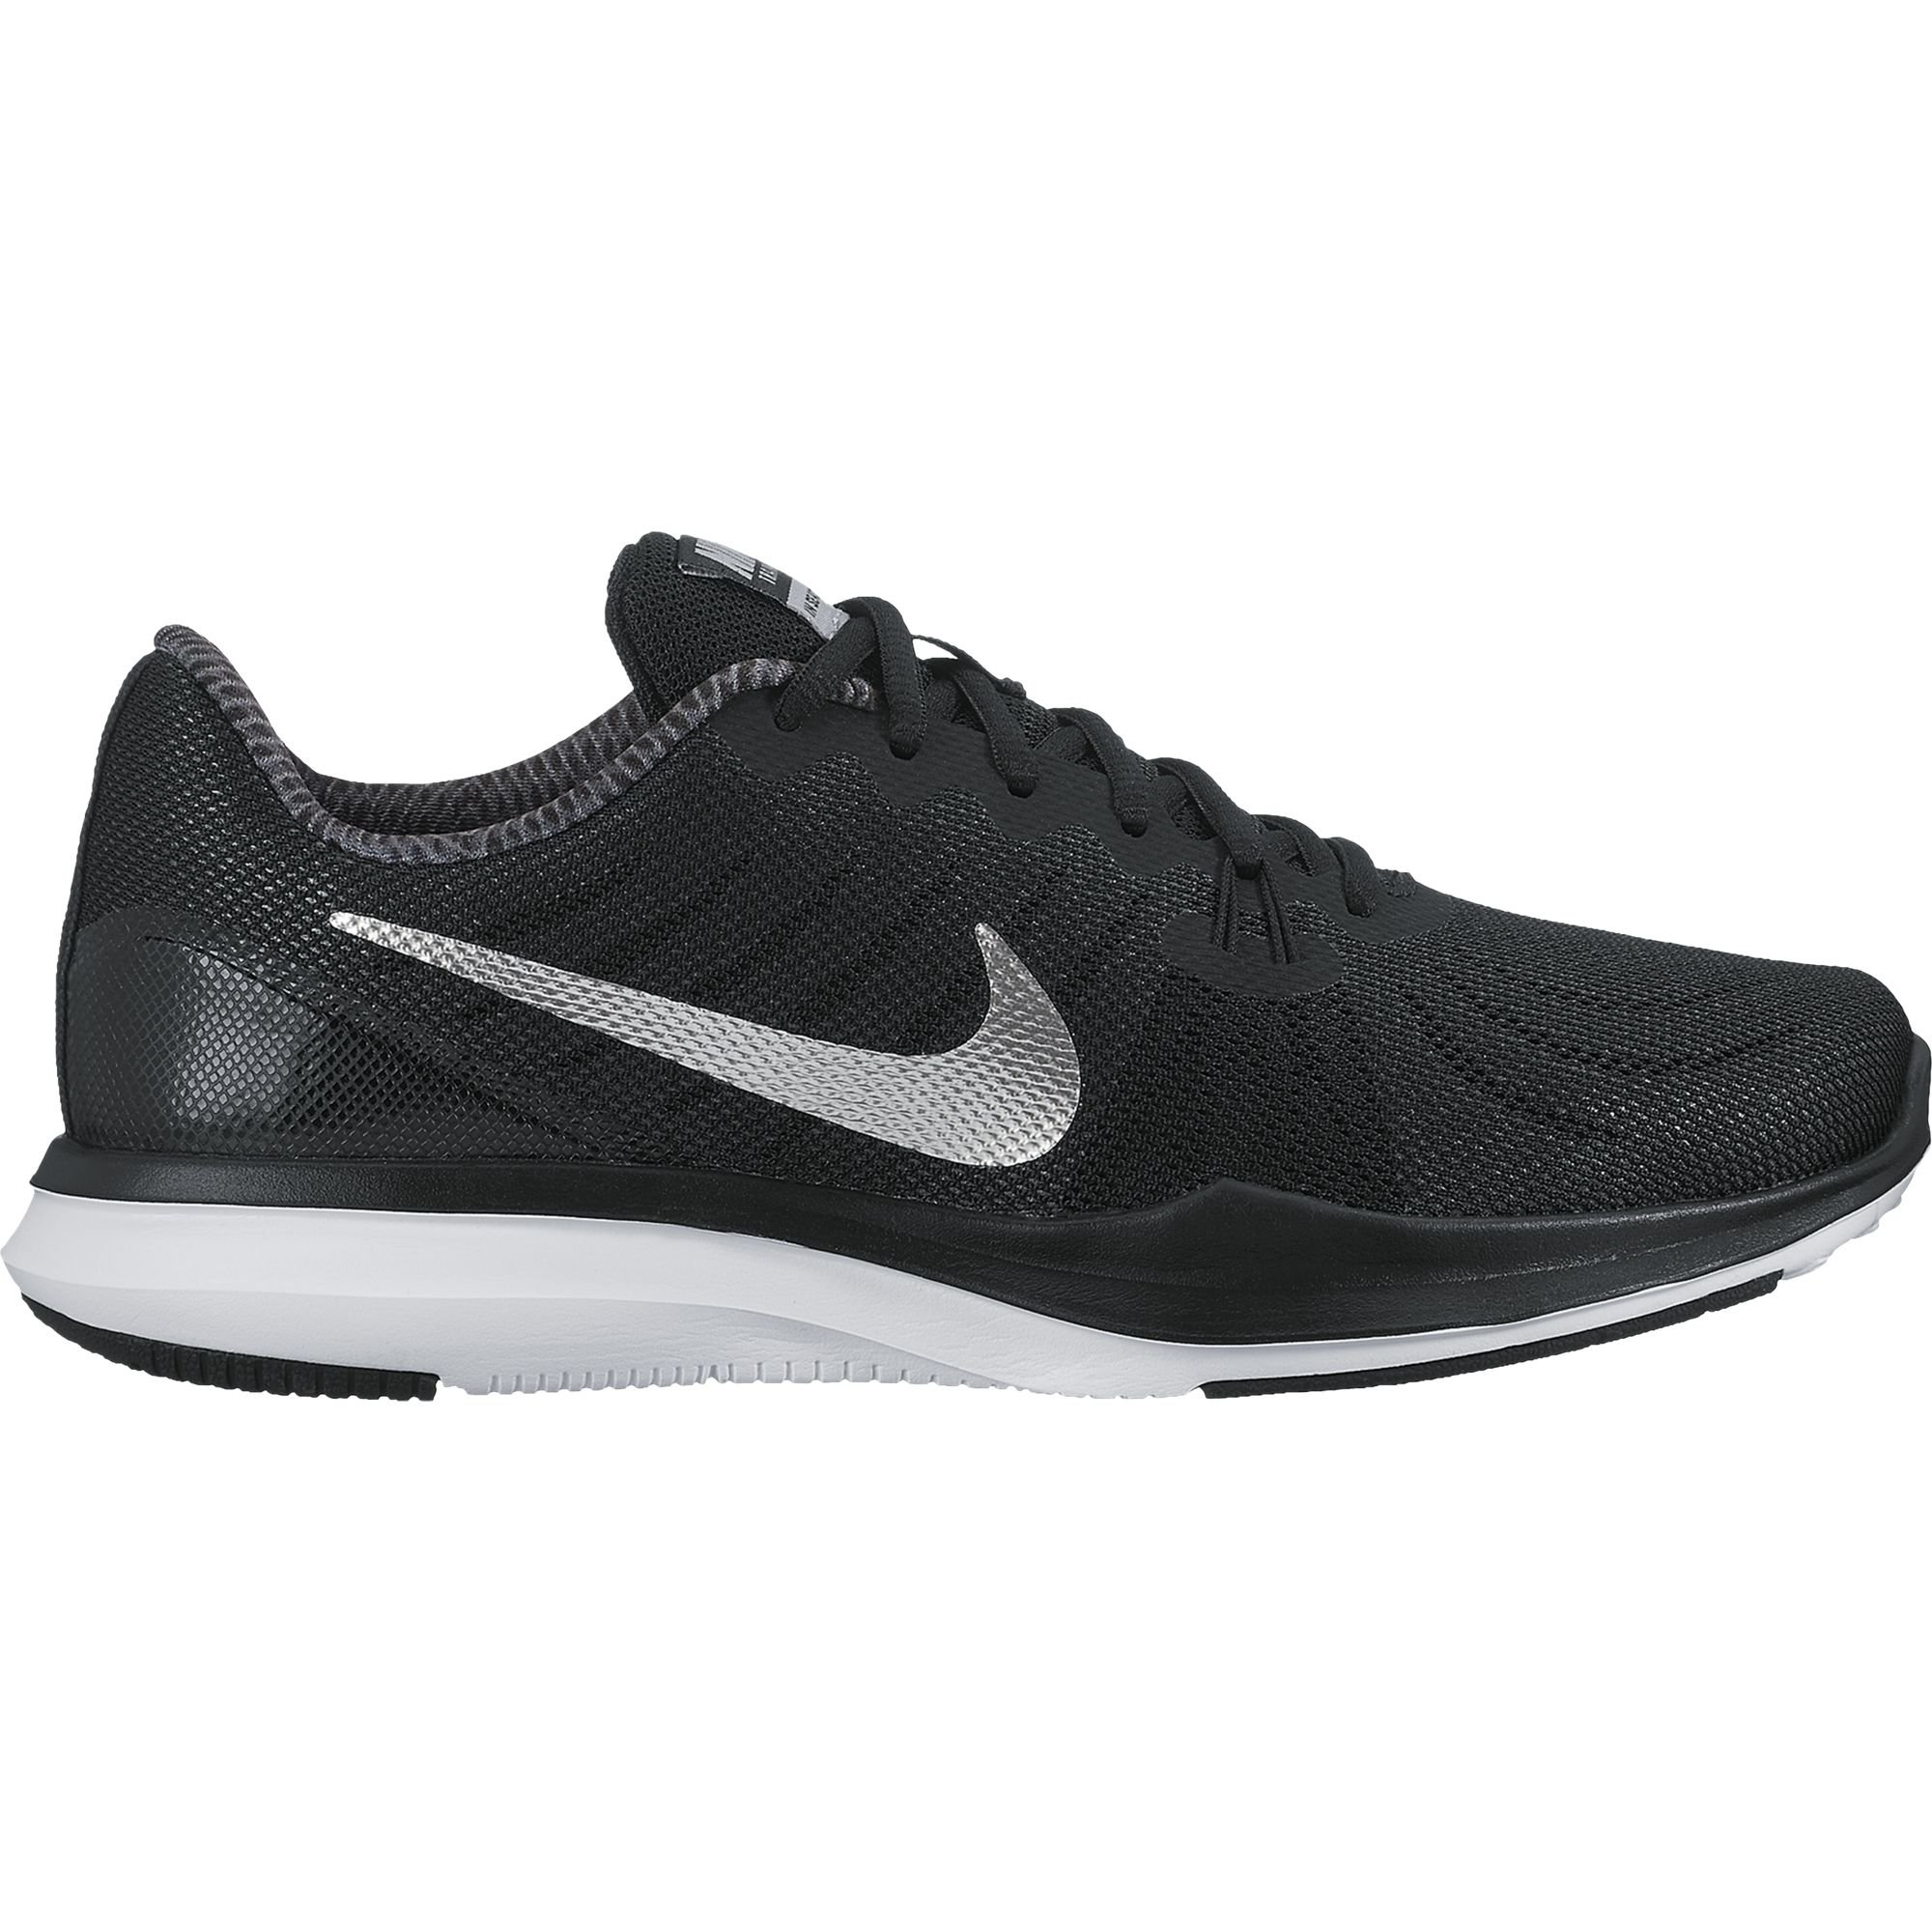 Nike Women's in-Season 7 Training Shoe Black/Metallic Silver/Anthracite Size 10 M US